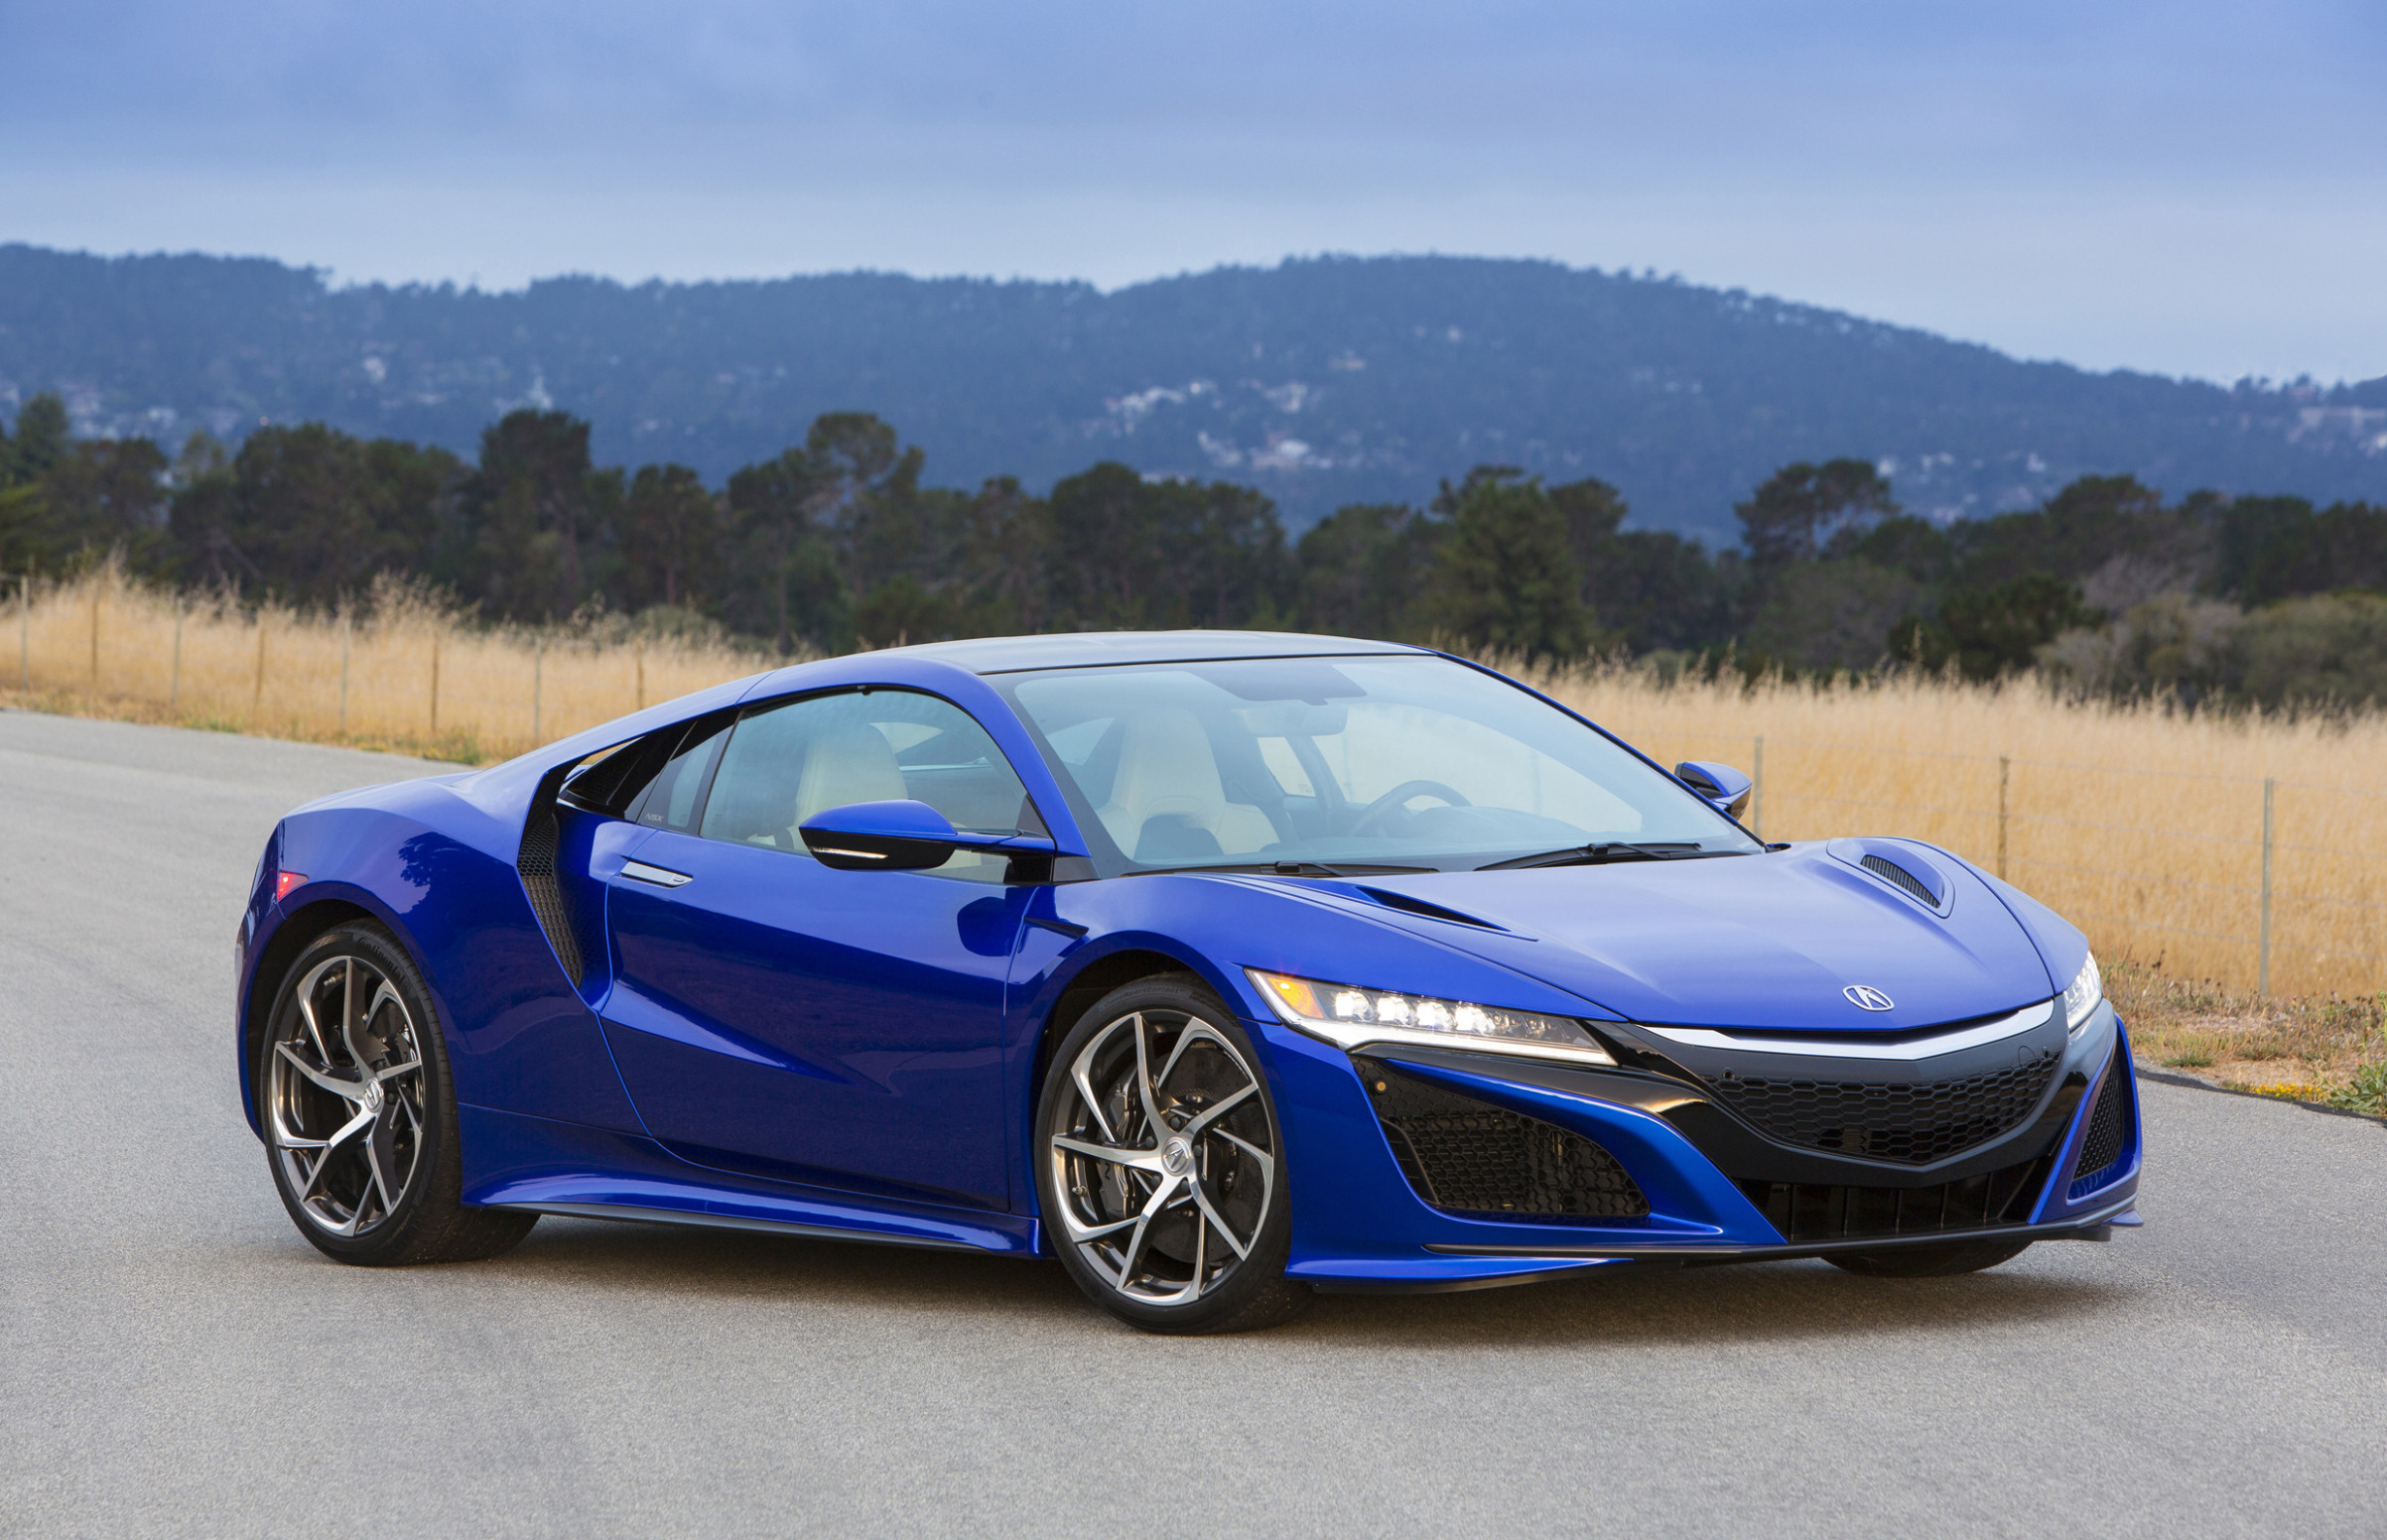 Acura NSX 8 - View Specs, Prices, Photos & More | Driving